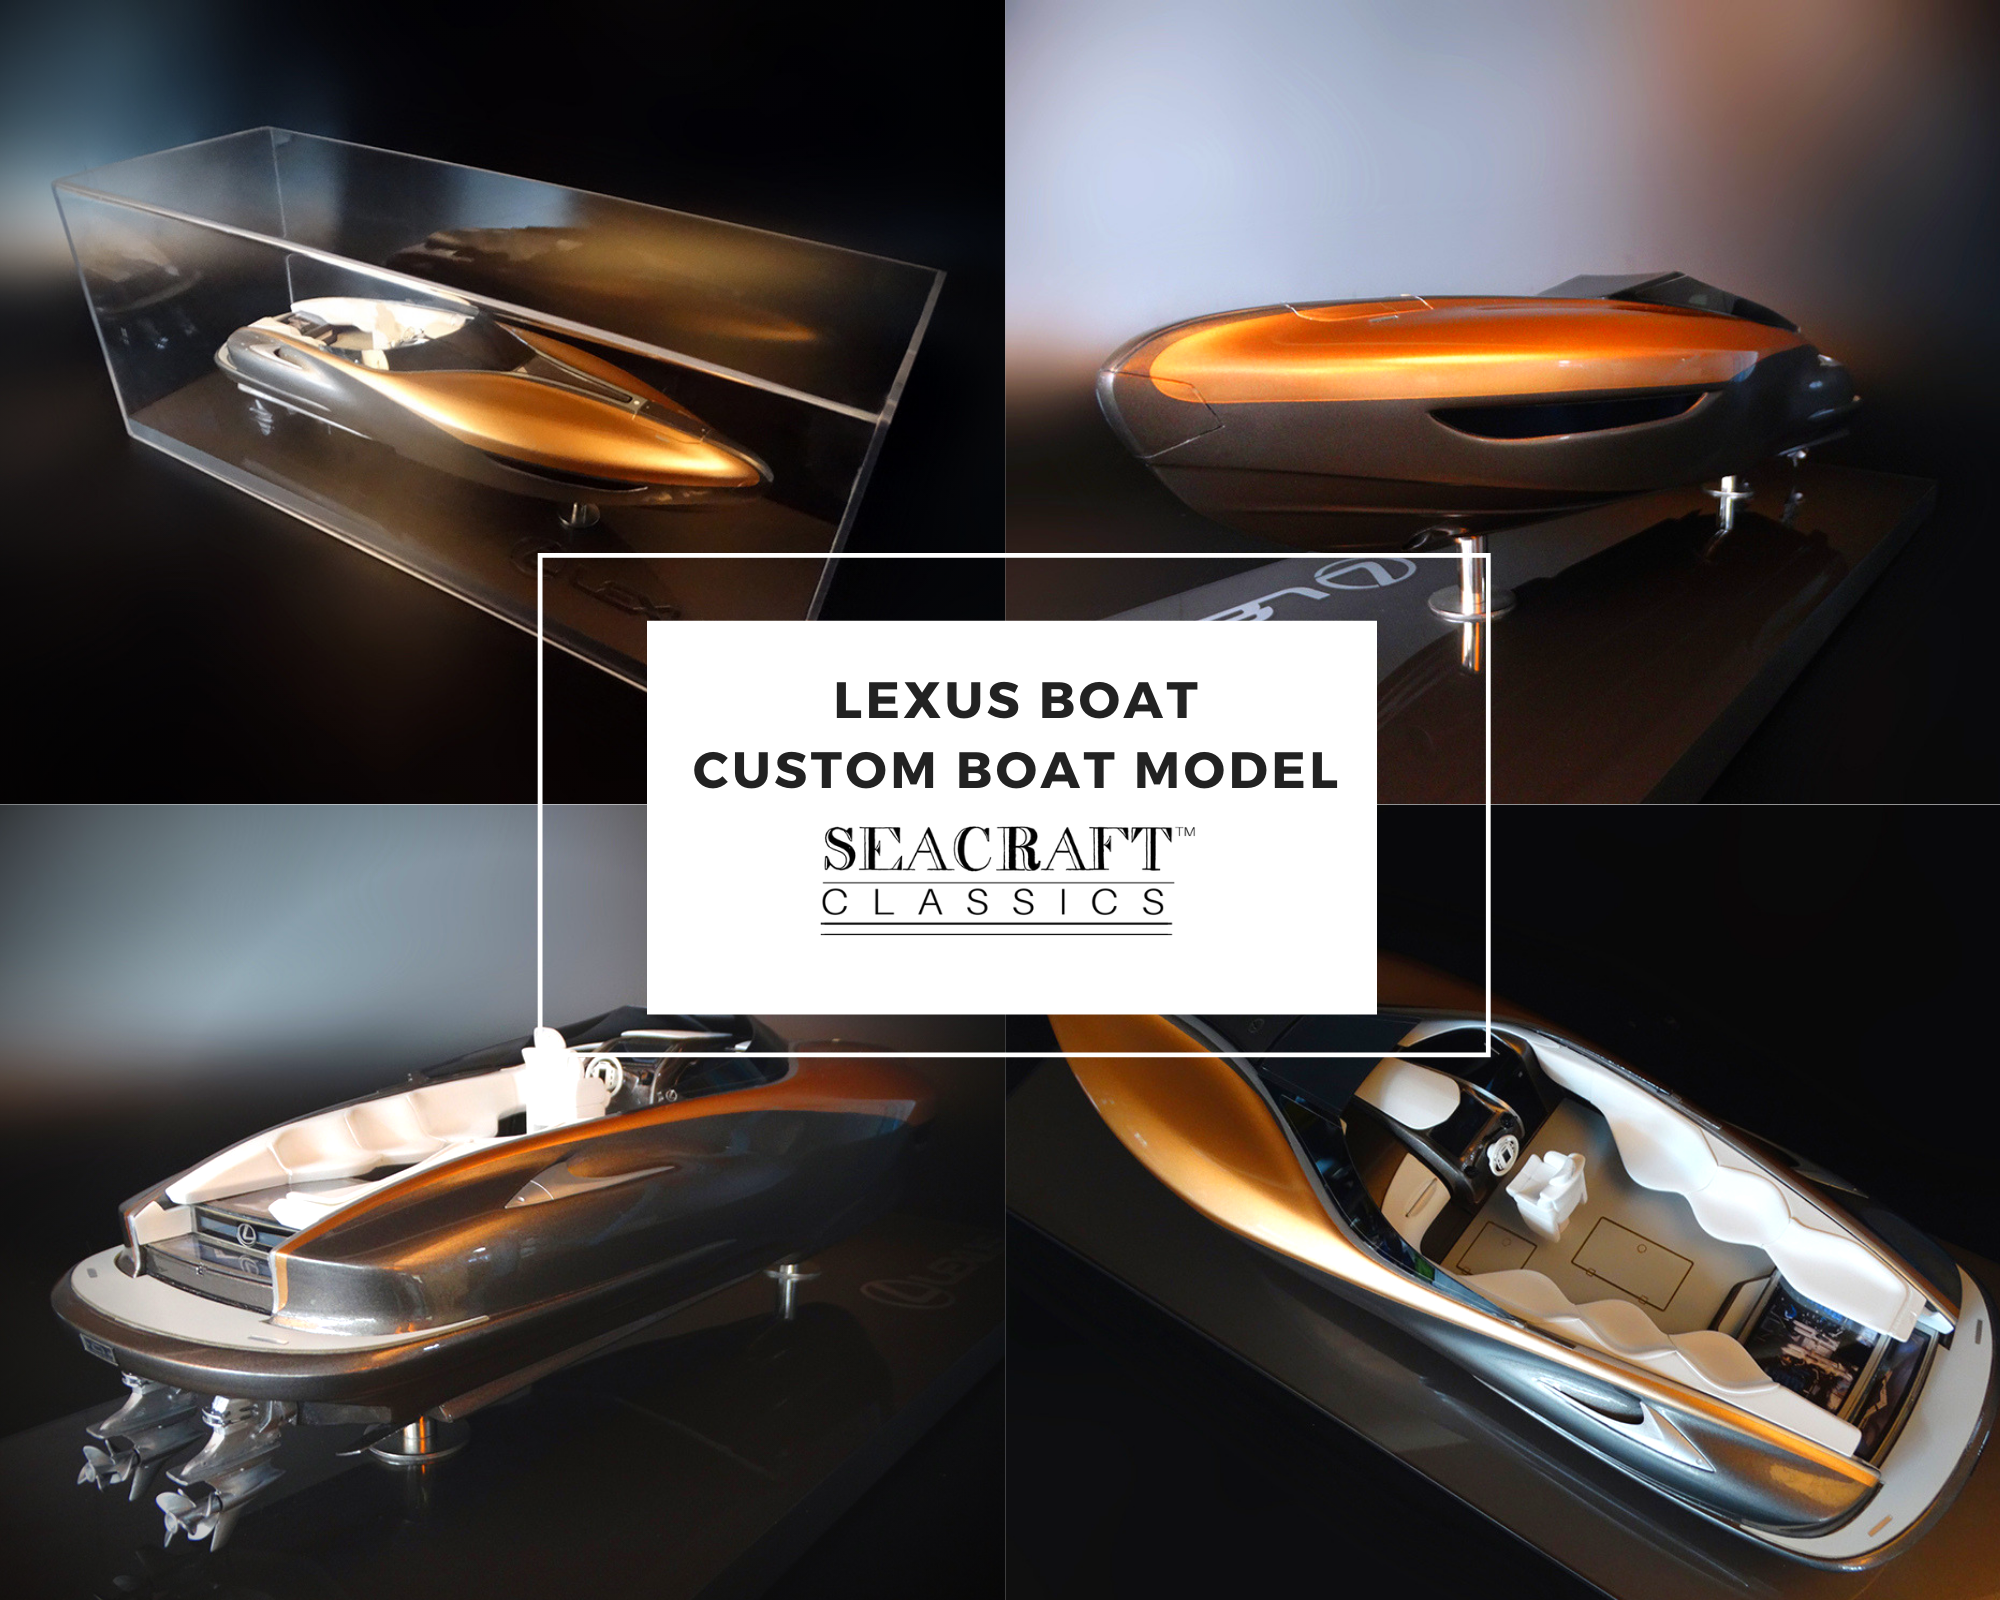 lexus_power_boat_model_seacraftclassics